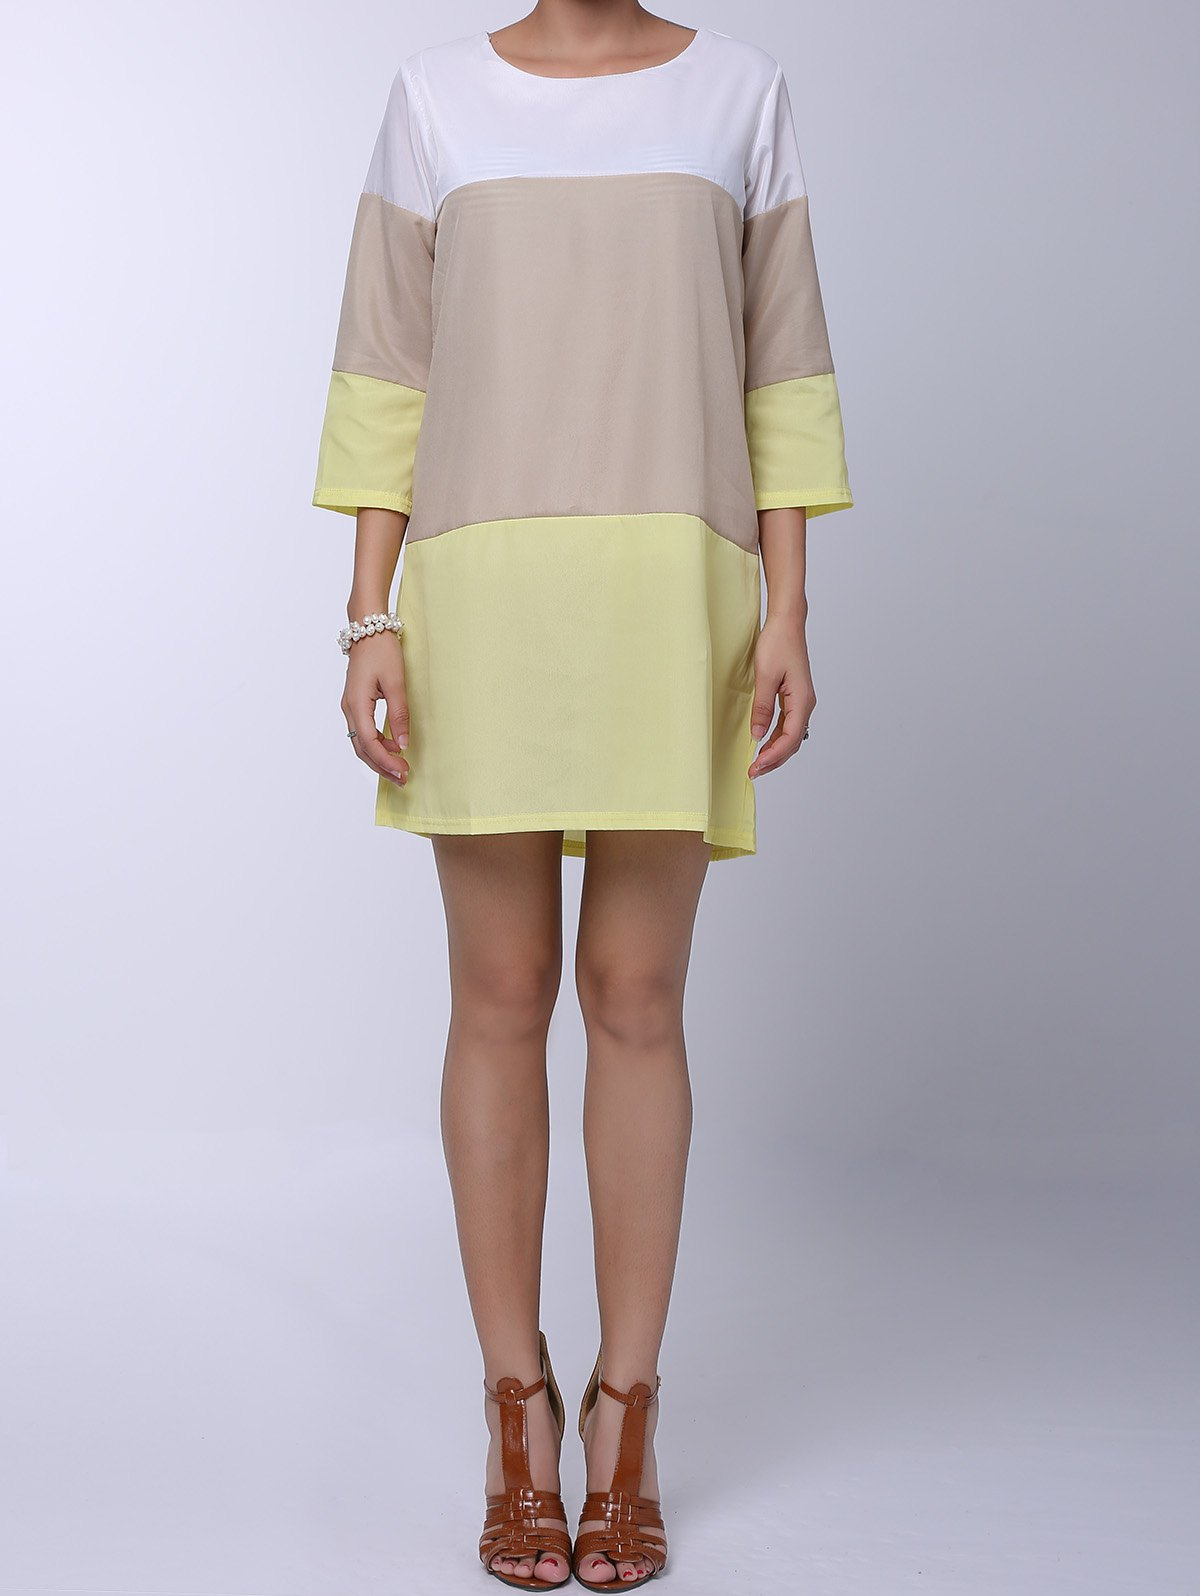 Round Neck 3/4 Sleeve Loose-Fitting Color Block Women's Dress - YELLOW S